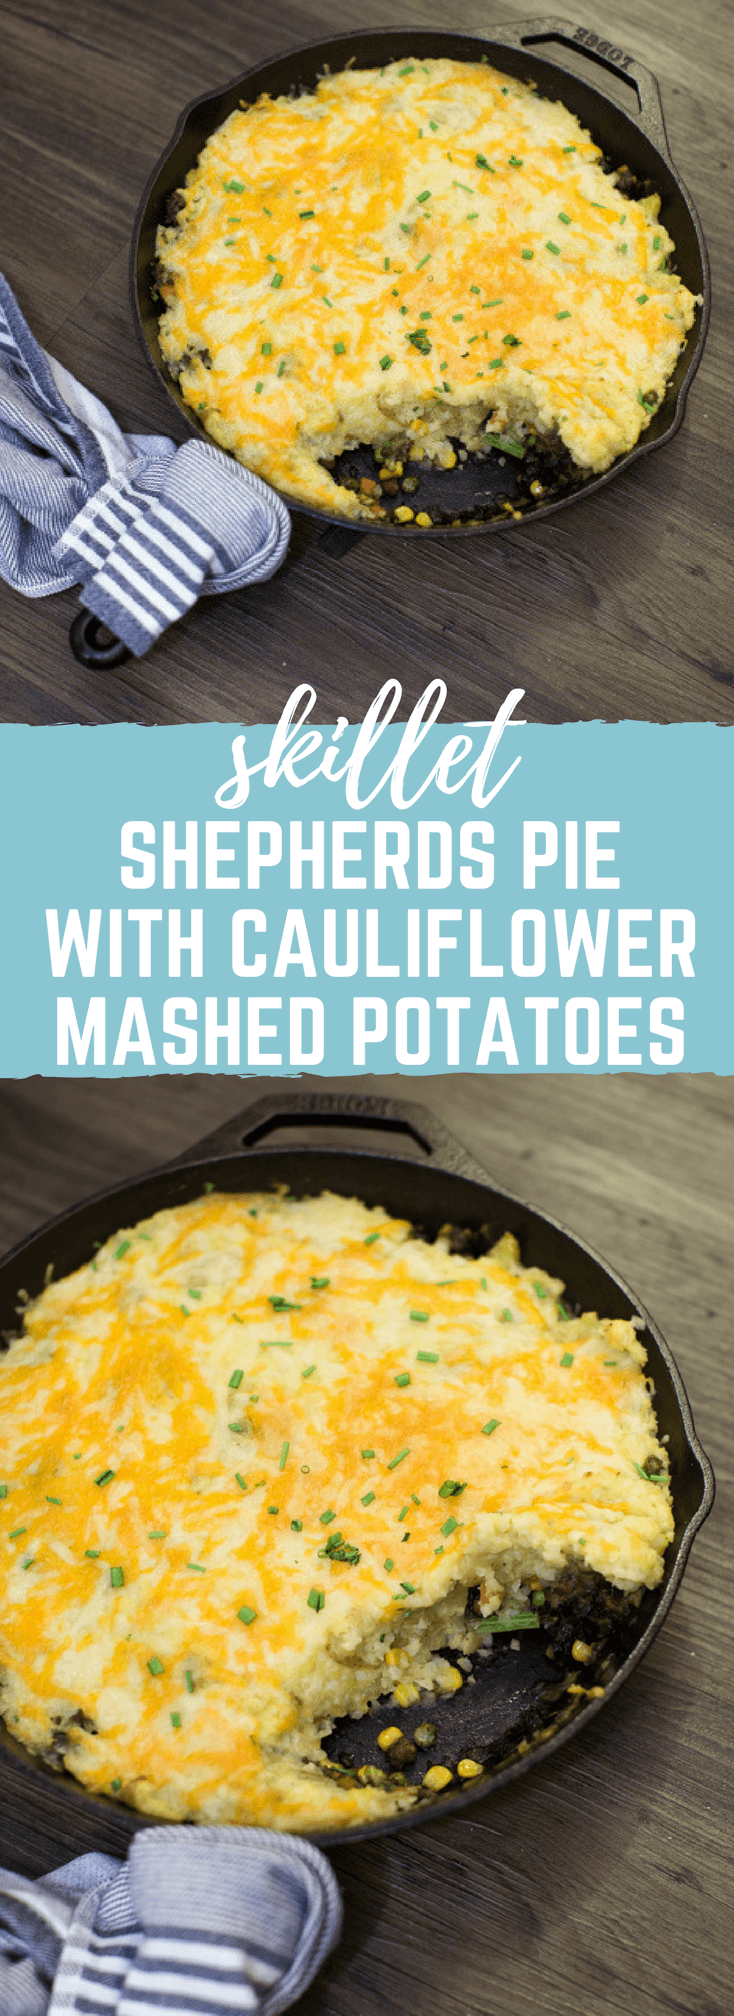 Skillet Shepherds Pie with Cauliflower Mashed Potatoes is a veggie forward and protein packed dinner meal. This recipe is a family favorite comfort food, especially when is extra cold outside.